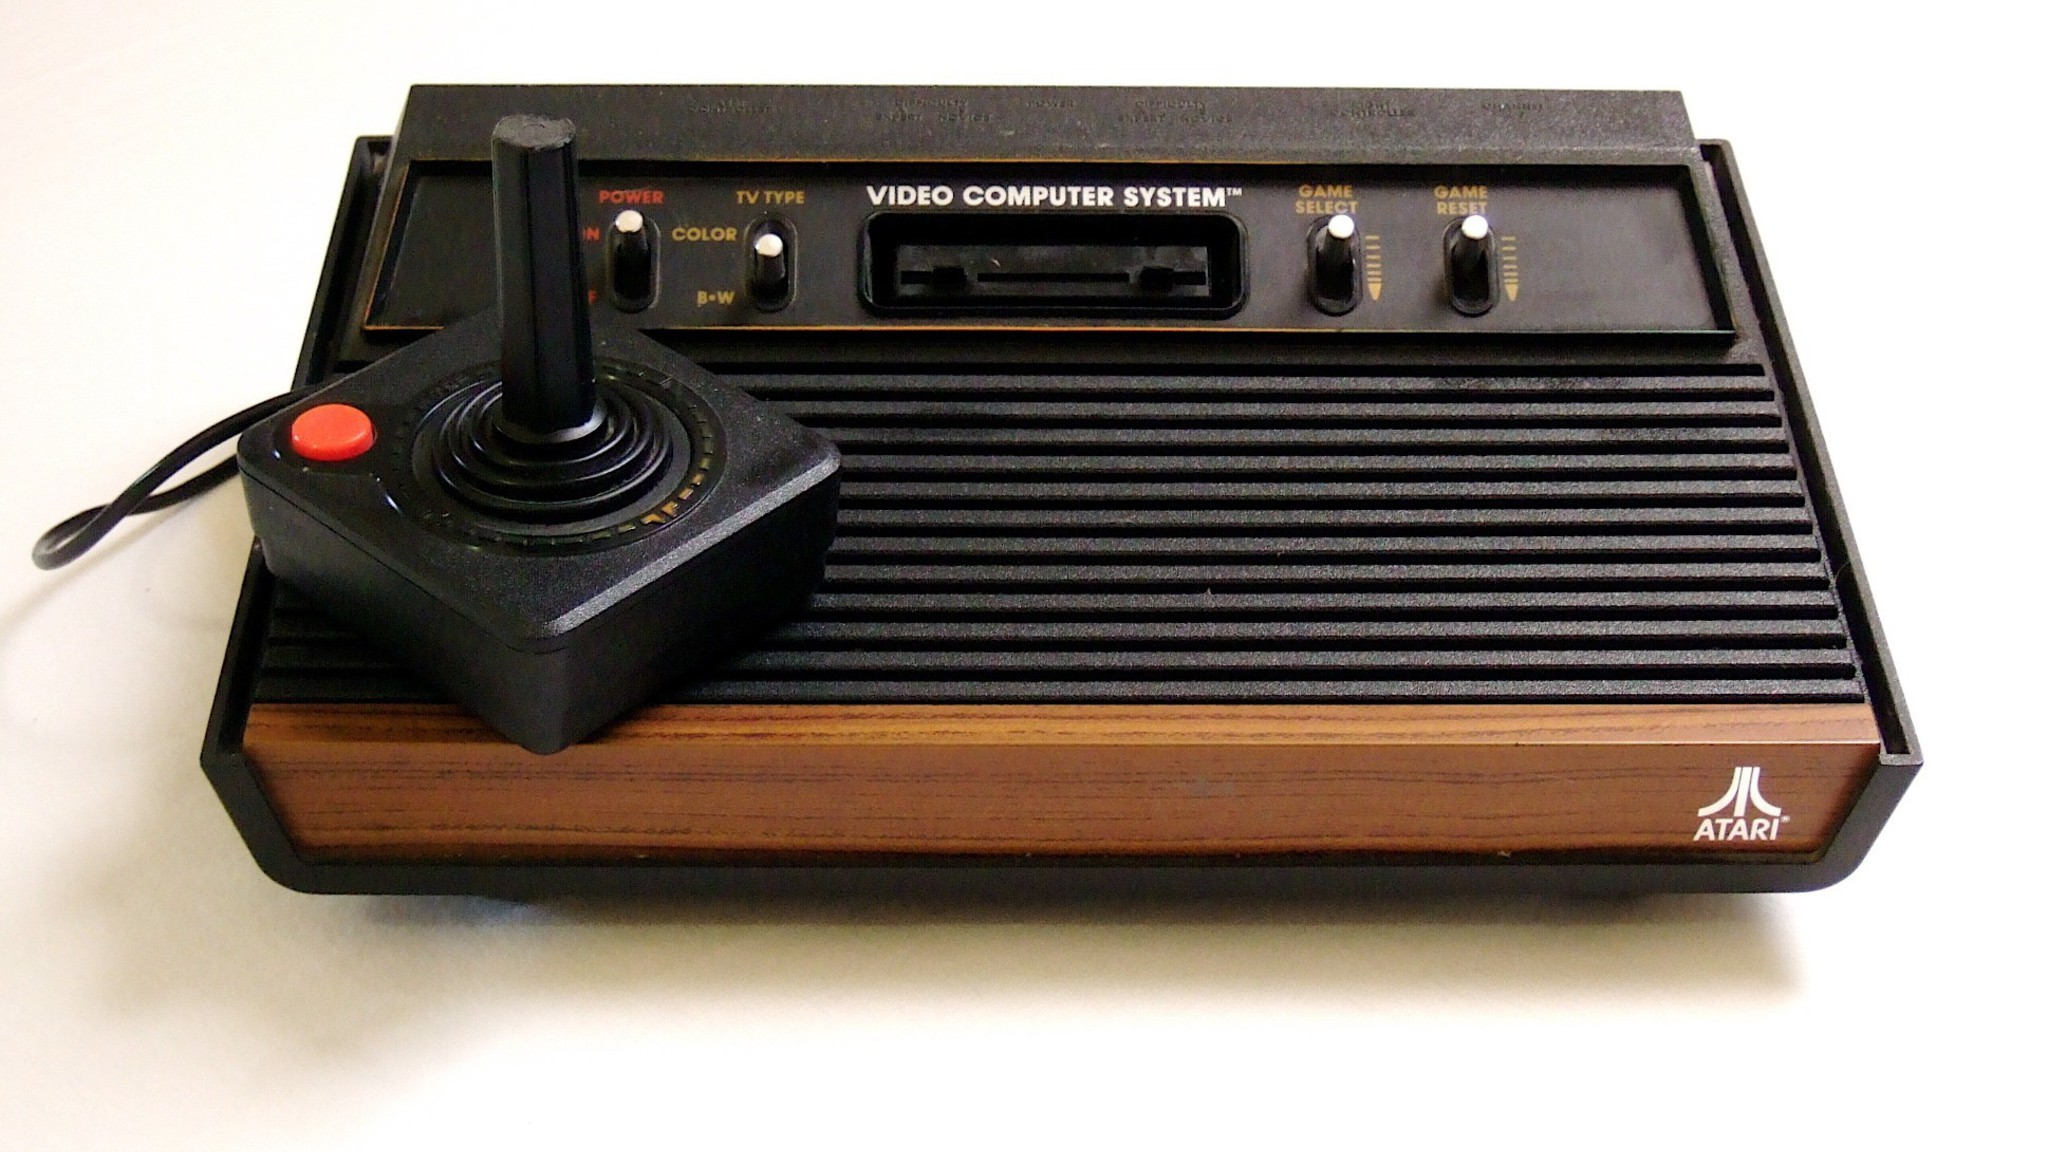 Ordinateurs Millésime Historique Console Atari Joysticks Fond Simple